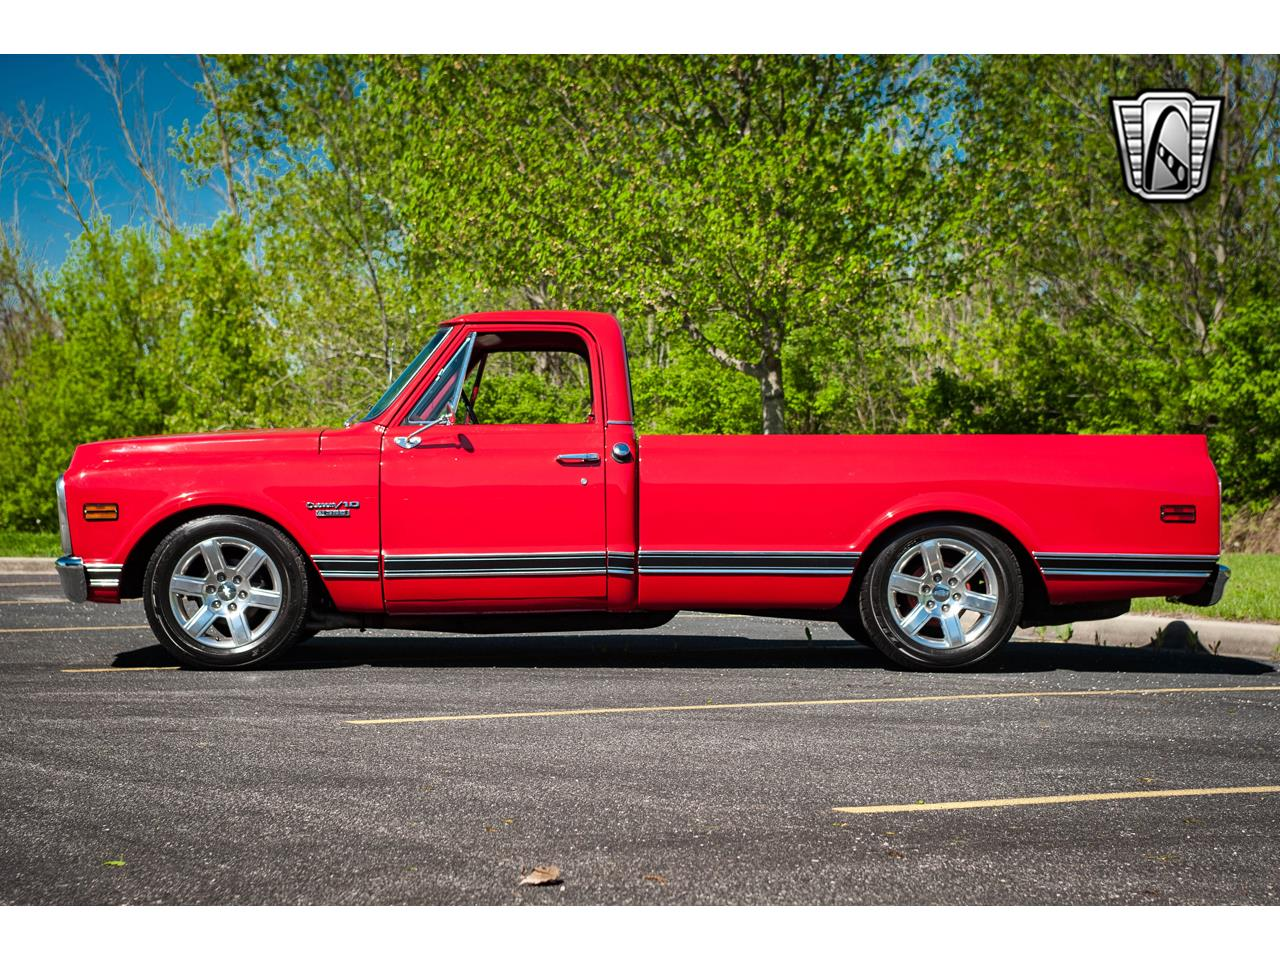 Large Picture of Classic 1969 C10 located in O'Fallon Illinois - $44,500.00 Offered by Gateway Classic Cars - St. Louis - QB8I